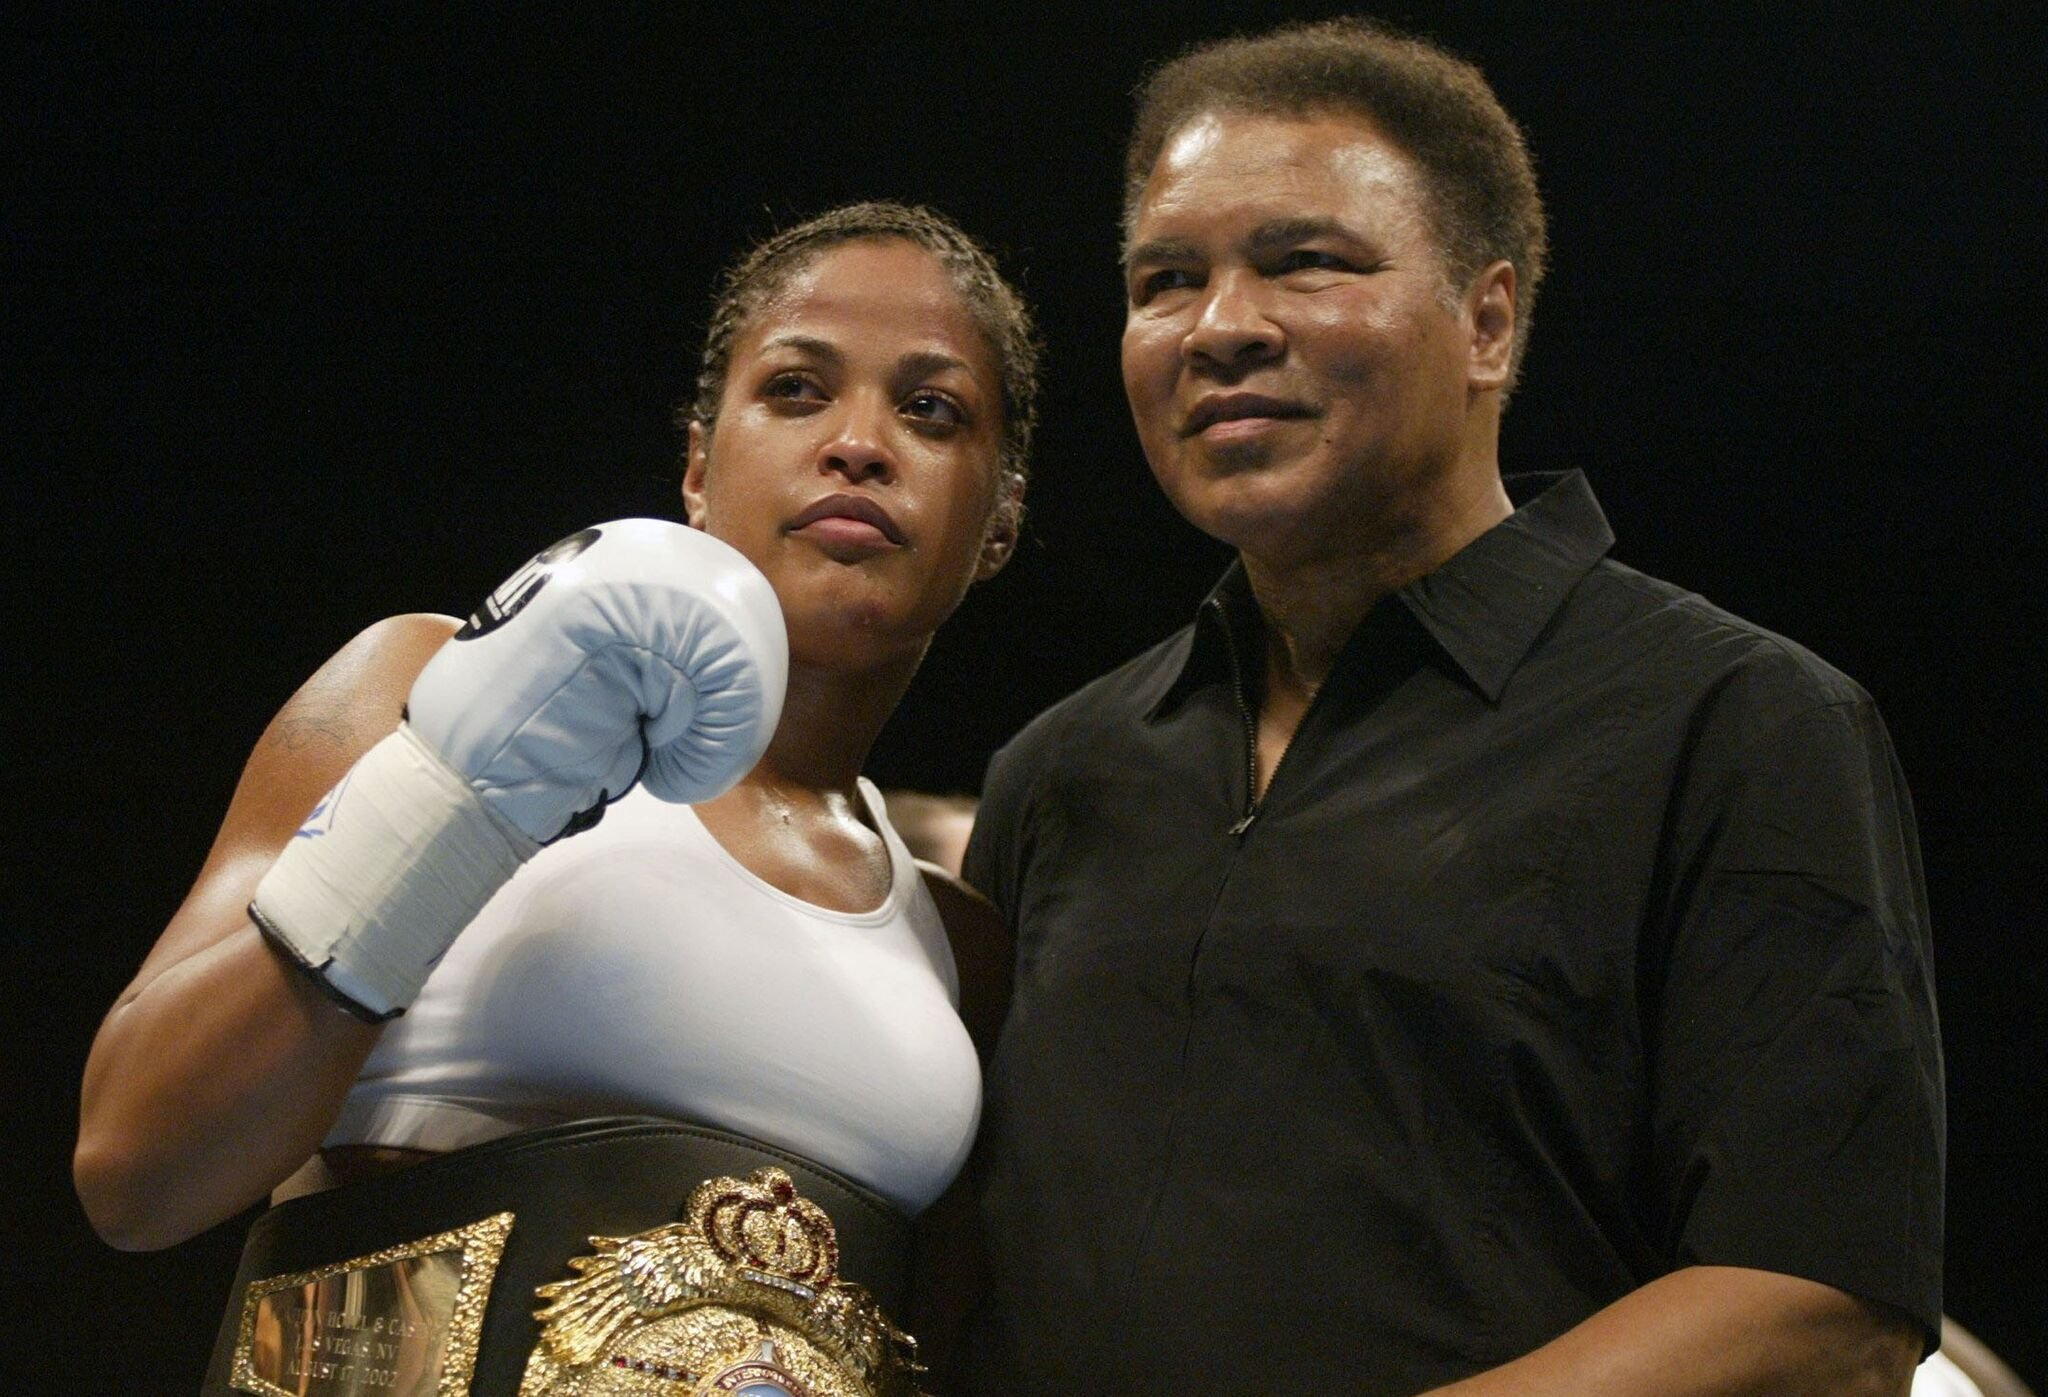 Female boxer Laila Ali poses with her father, former boxer, Muhammad Ali, after defeating Suzy Taylor after two rounds at the Aladdin Casino on August 17, 2002 | Photo: Getty Images